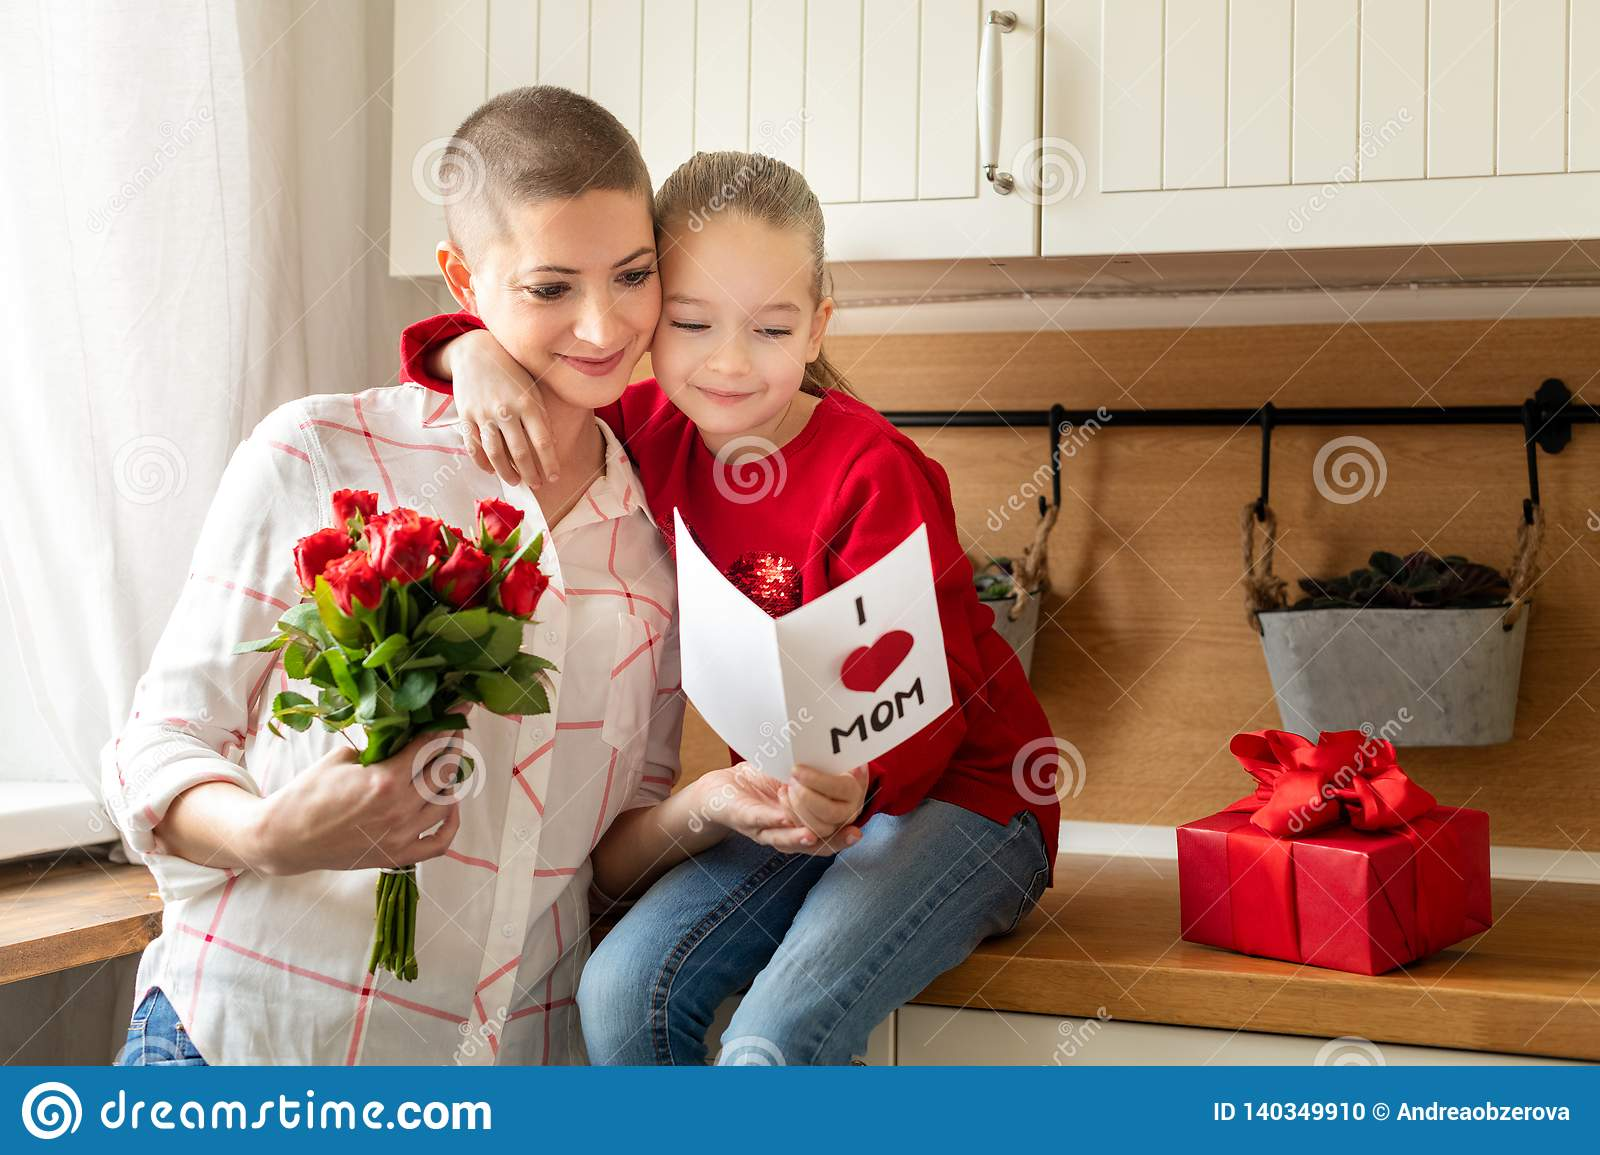 Adorable young girl and her mom, young cancer patient, reading a homemade greeting card. Family concept. Happy Mother`s Day.